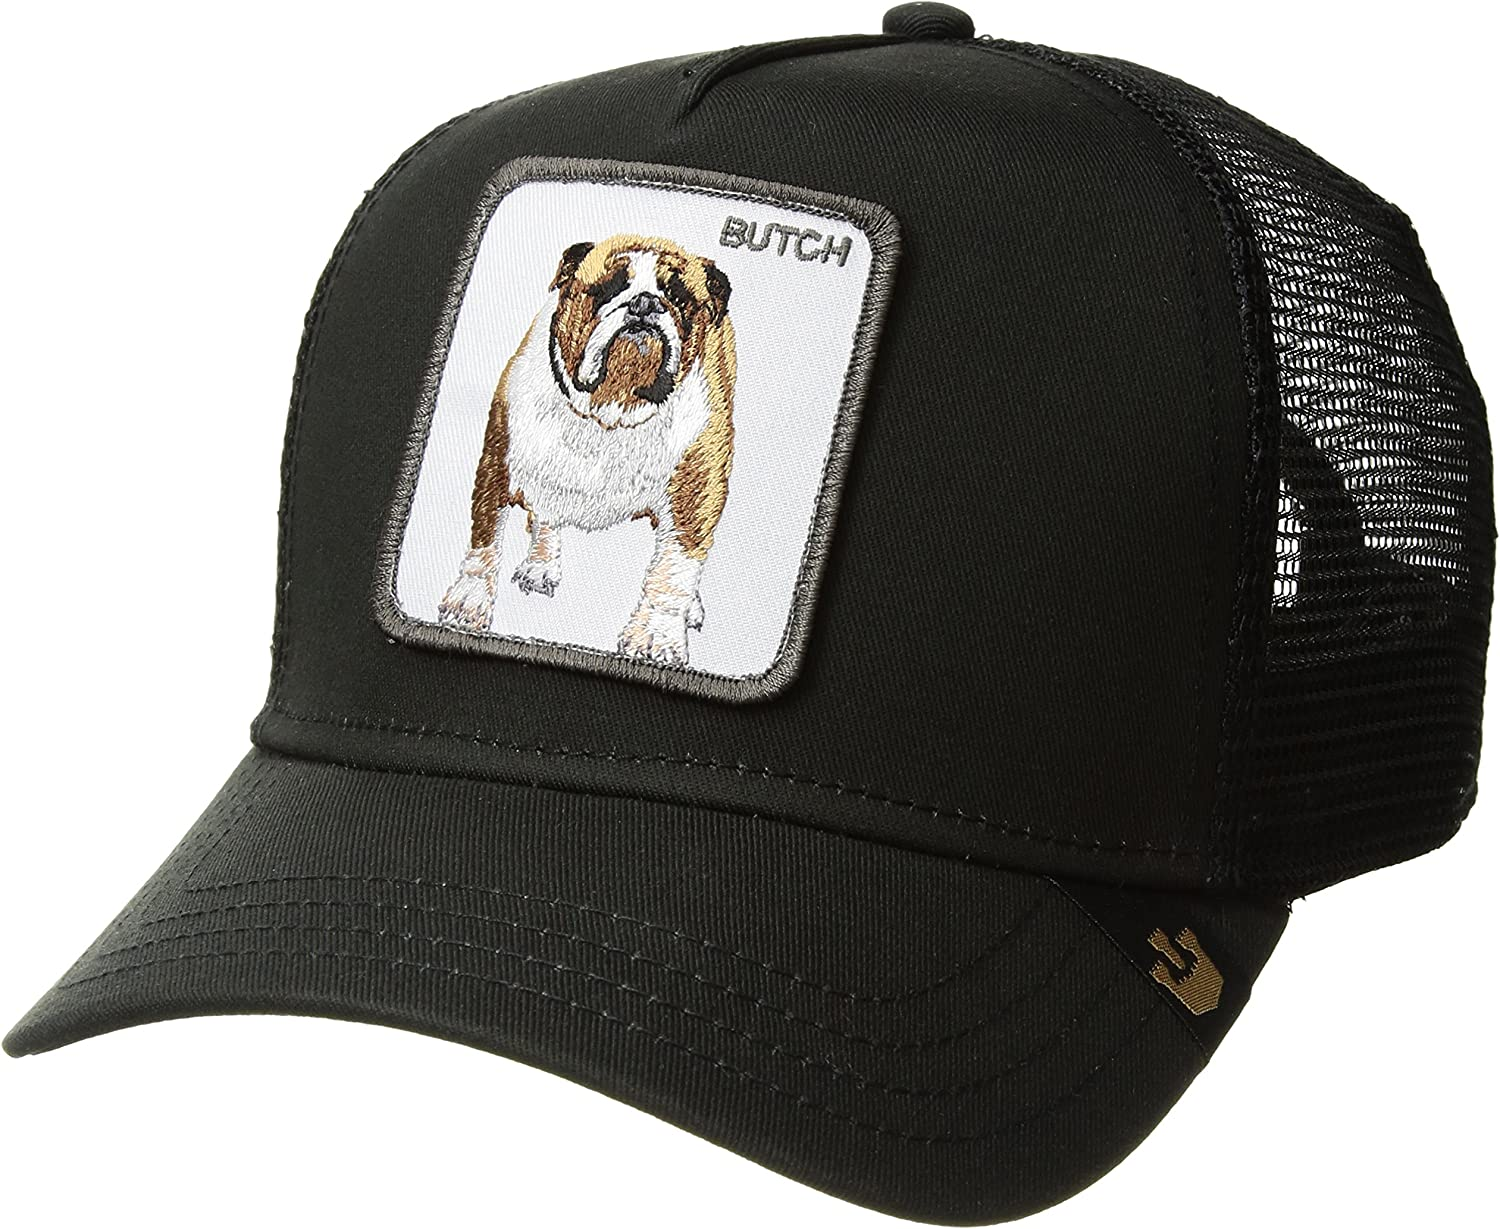 Goorin Bros  Mens Butch Animal Farm Trucker Cap  Black  One Size